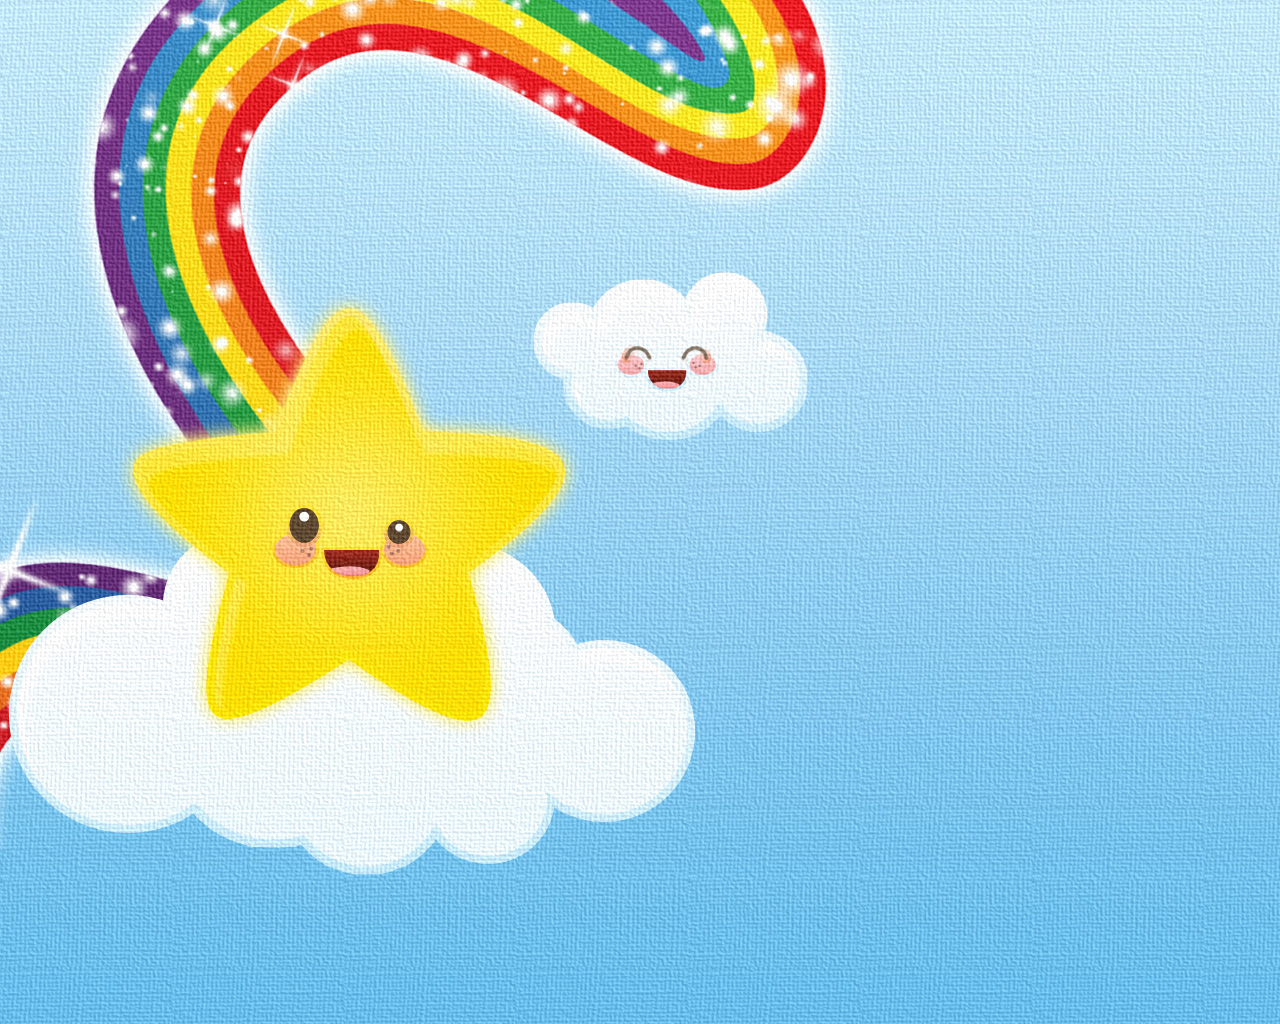 http://3.bp.blogspot.com/-ykVeSaXIhzI/UQ0_cgeIWlI/AAAAAAAAADs/eIZpXRgm04k/s1600/rainbow_star_kawaii_cute_wallpaper-normal5.4.jpg